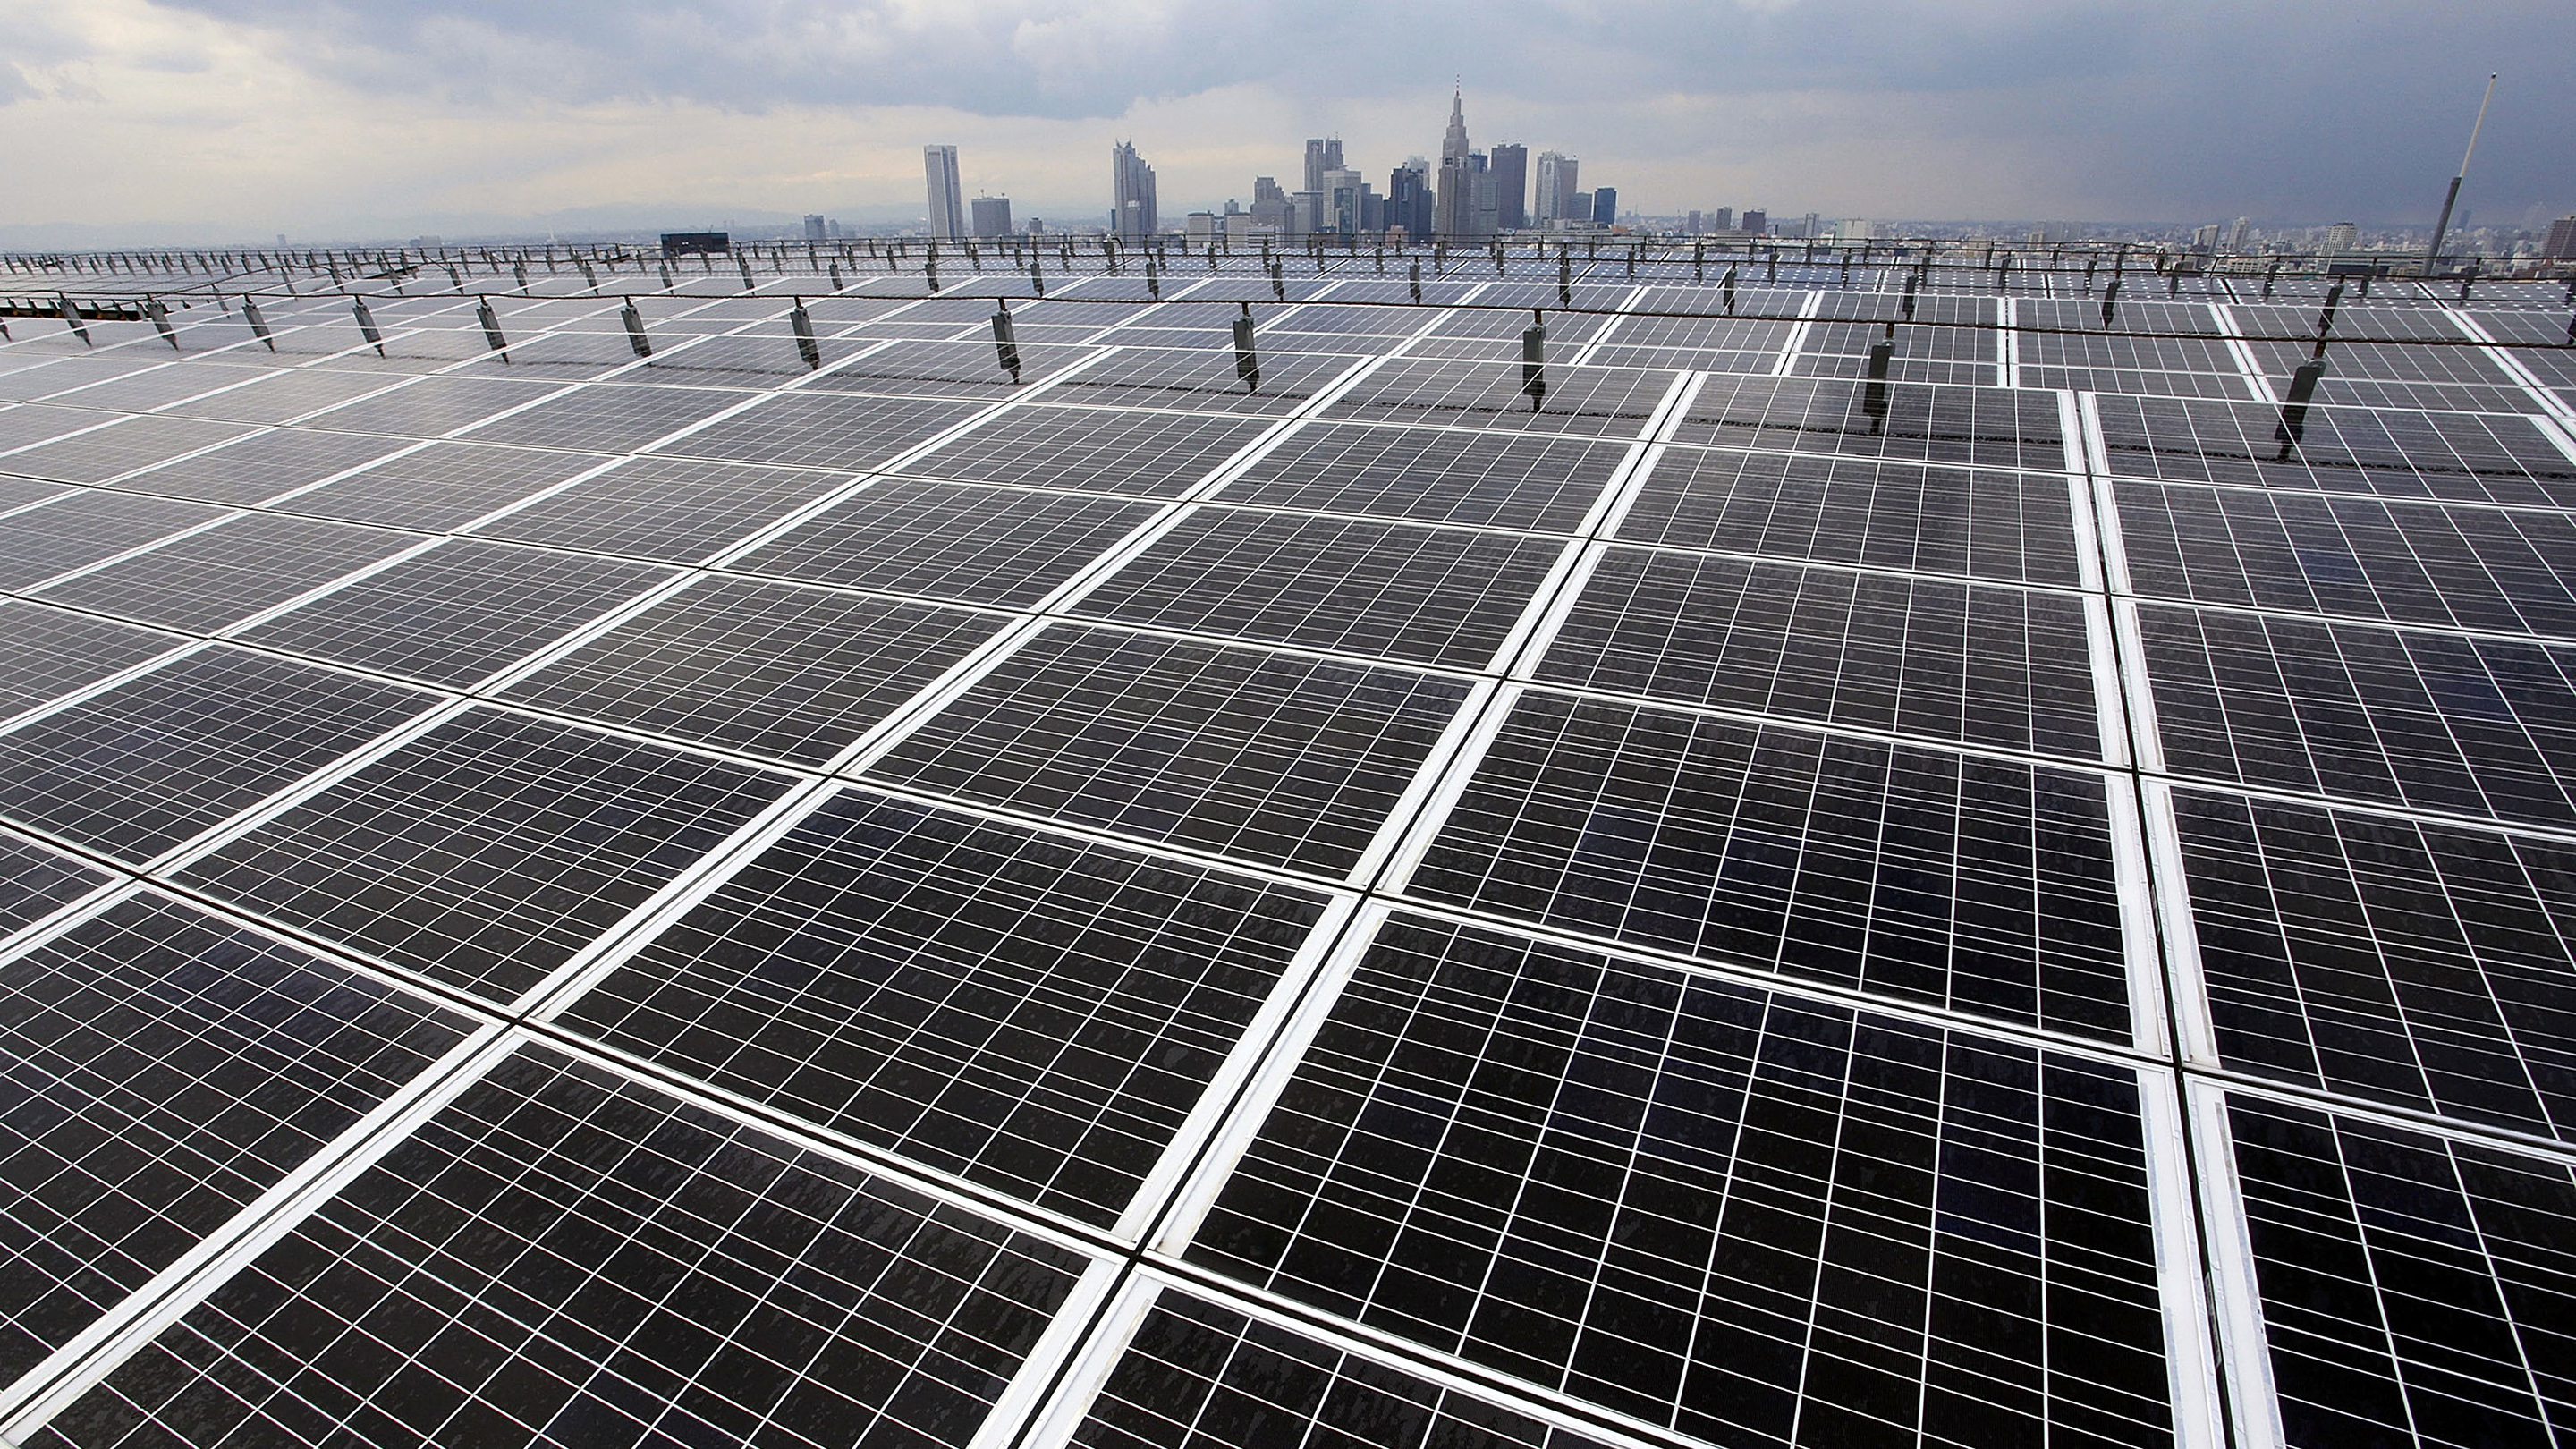 Solar Panels At Itochu Corp.'s Headquarters